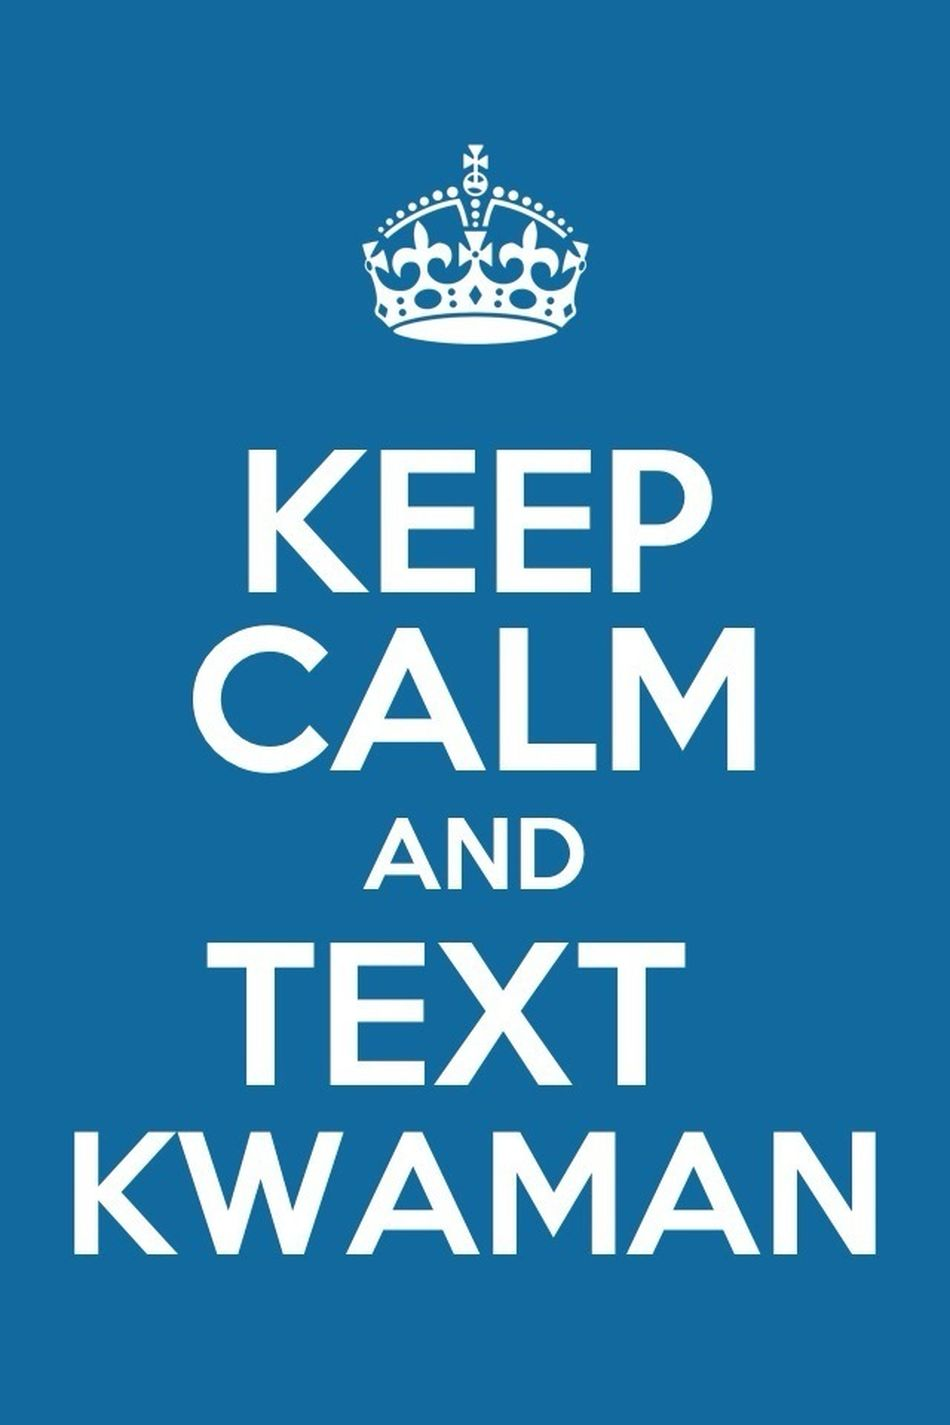 If You Want To Text , Comment A :)